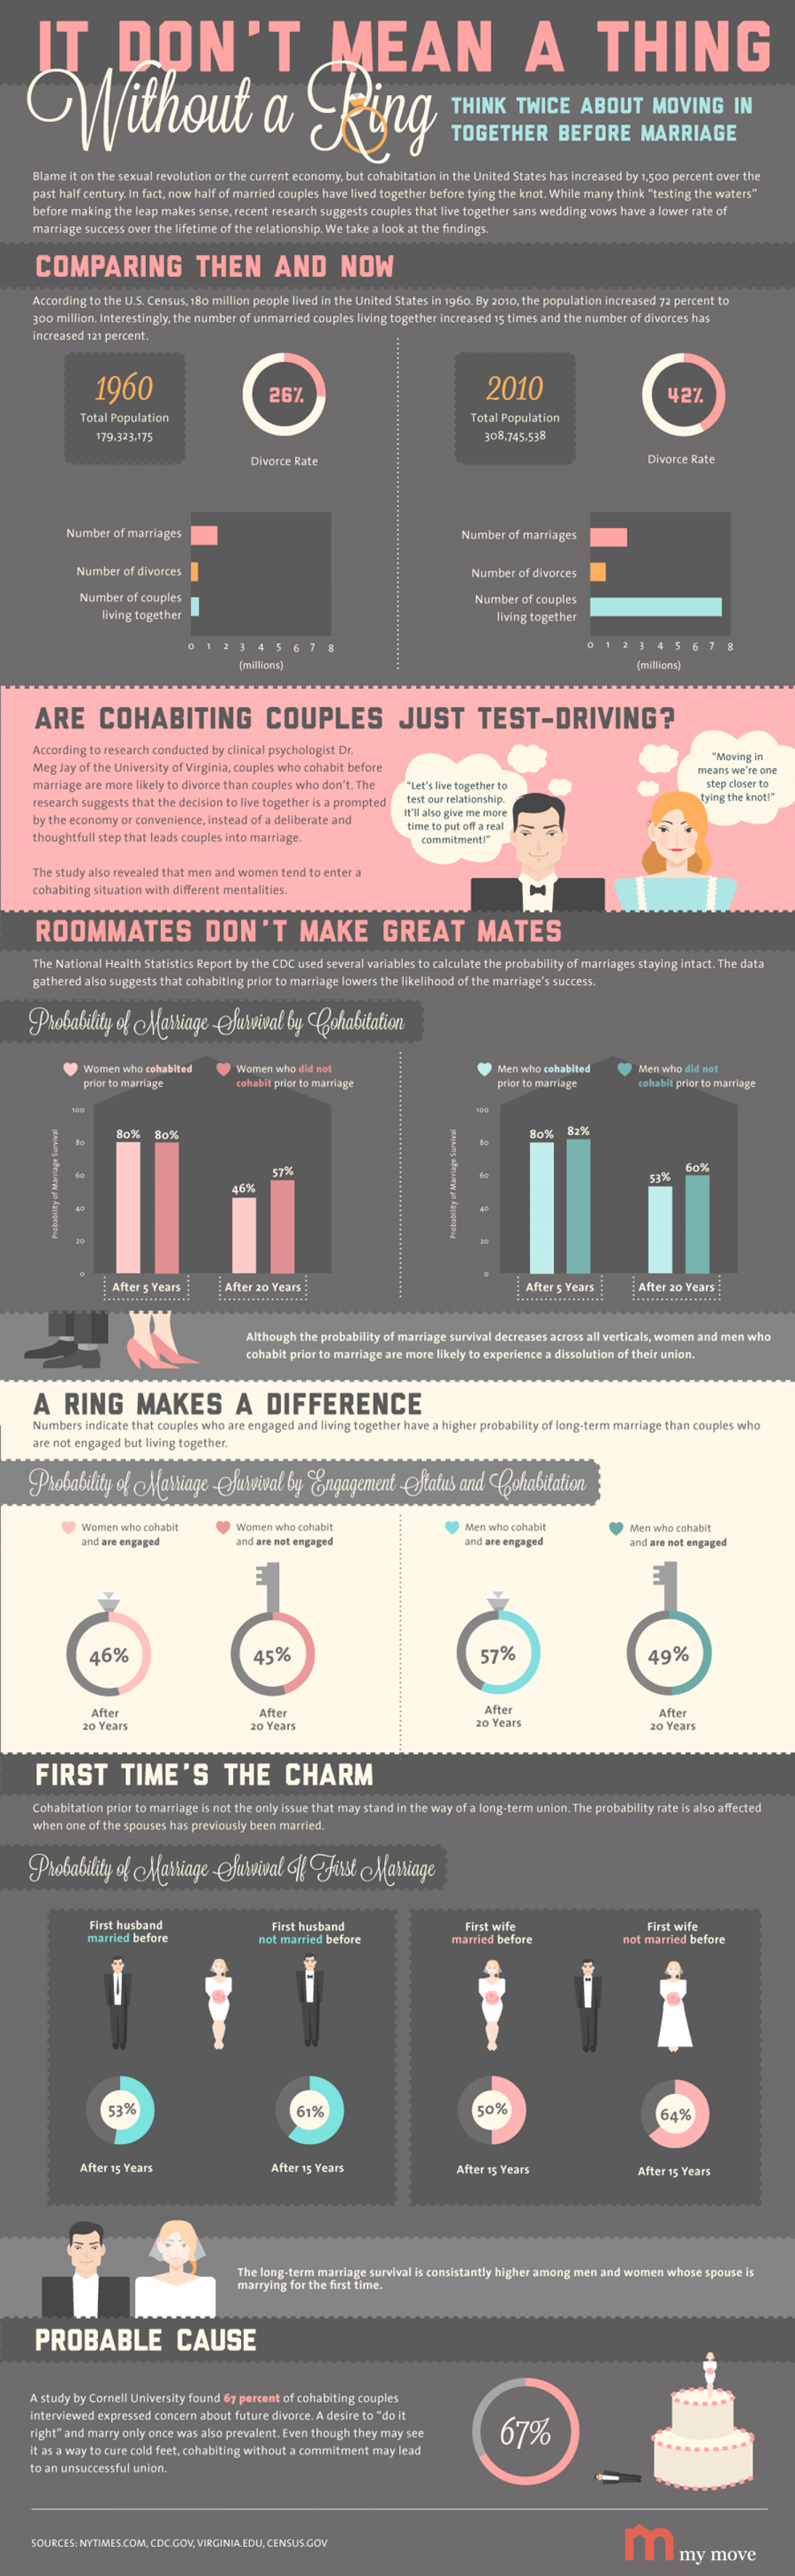 It Don't Mean a Thing Without a Ring Infographic